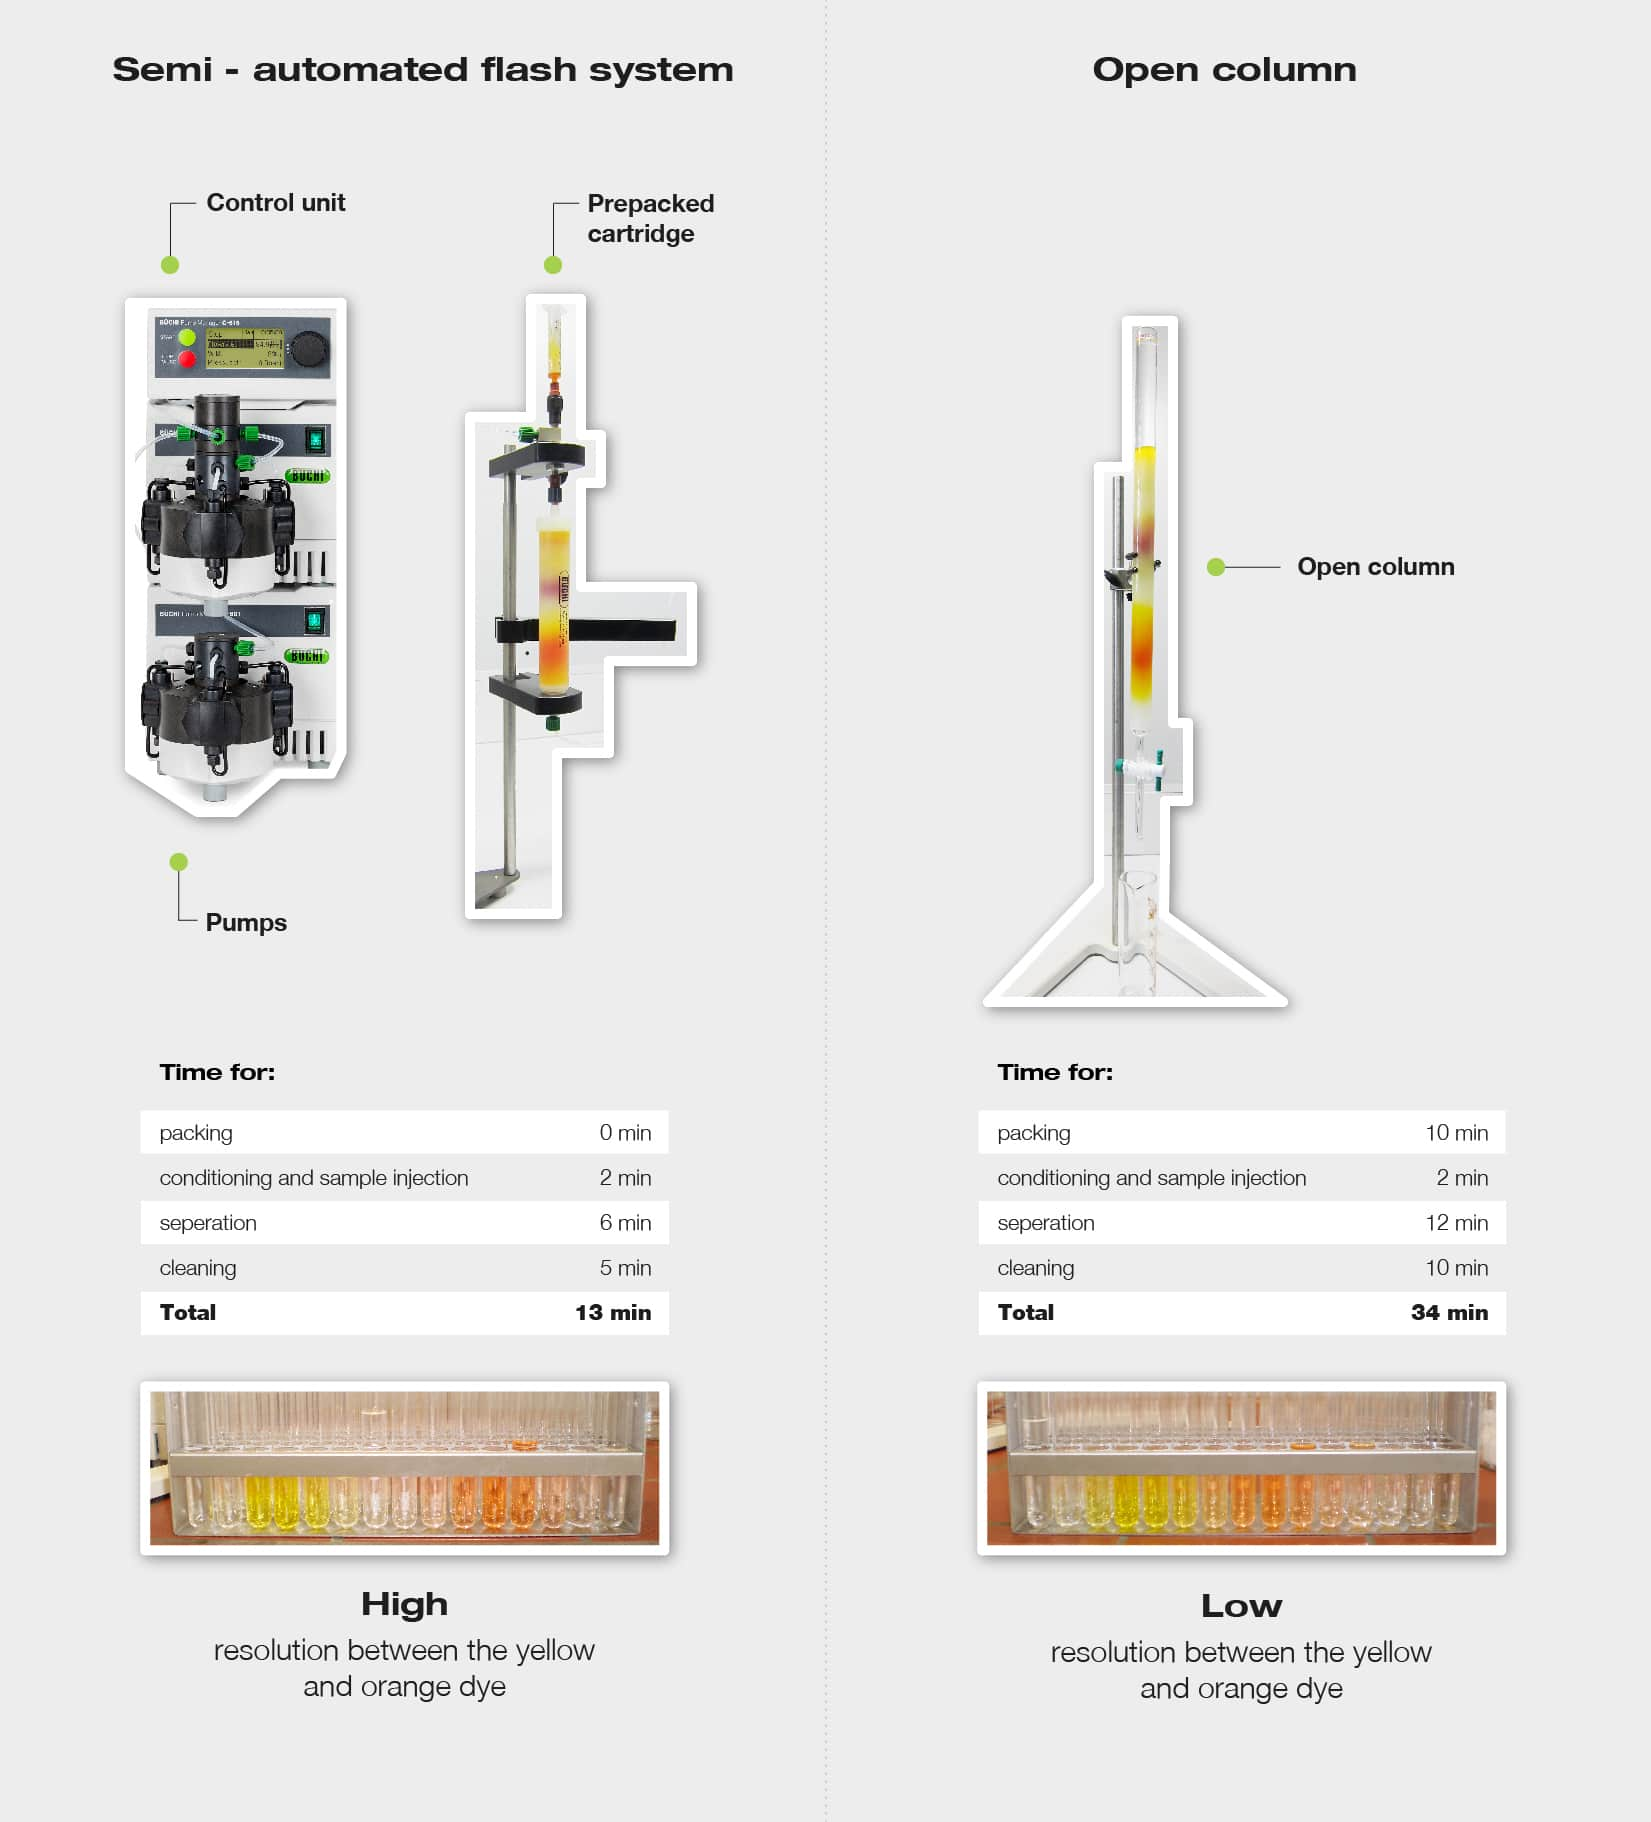 semi automated chromatography systems vs open columns